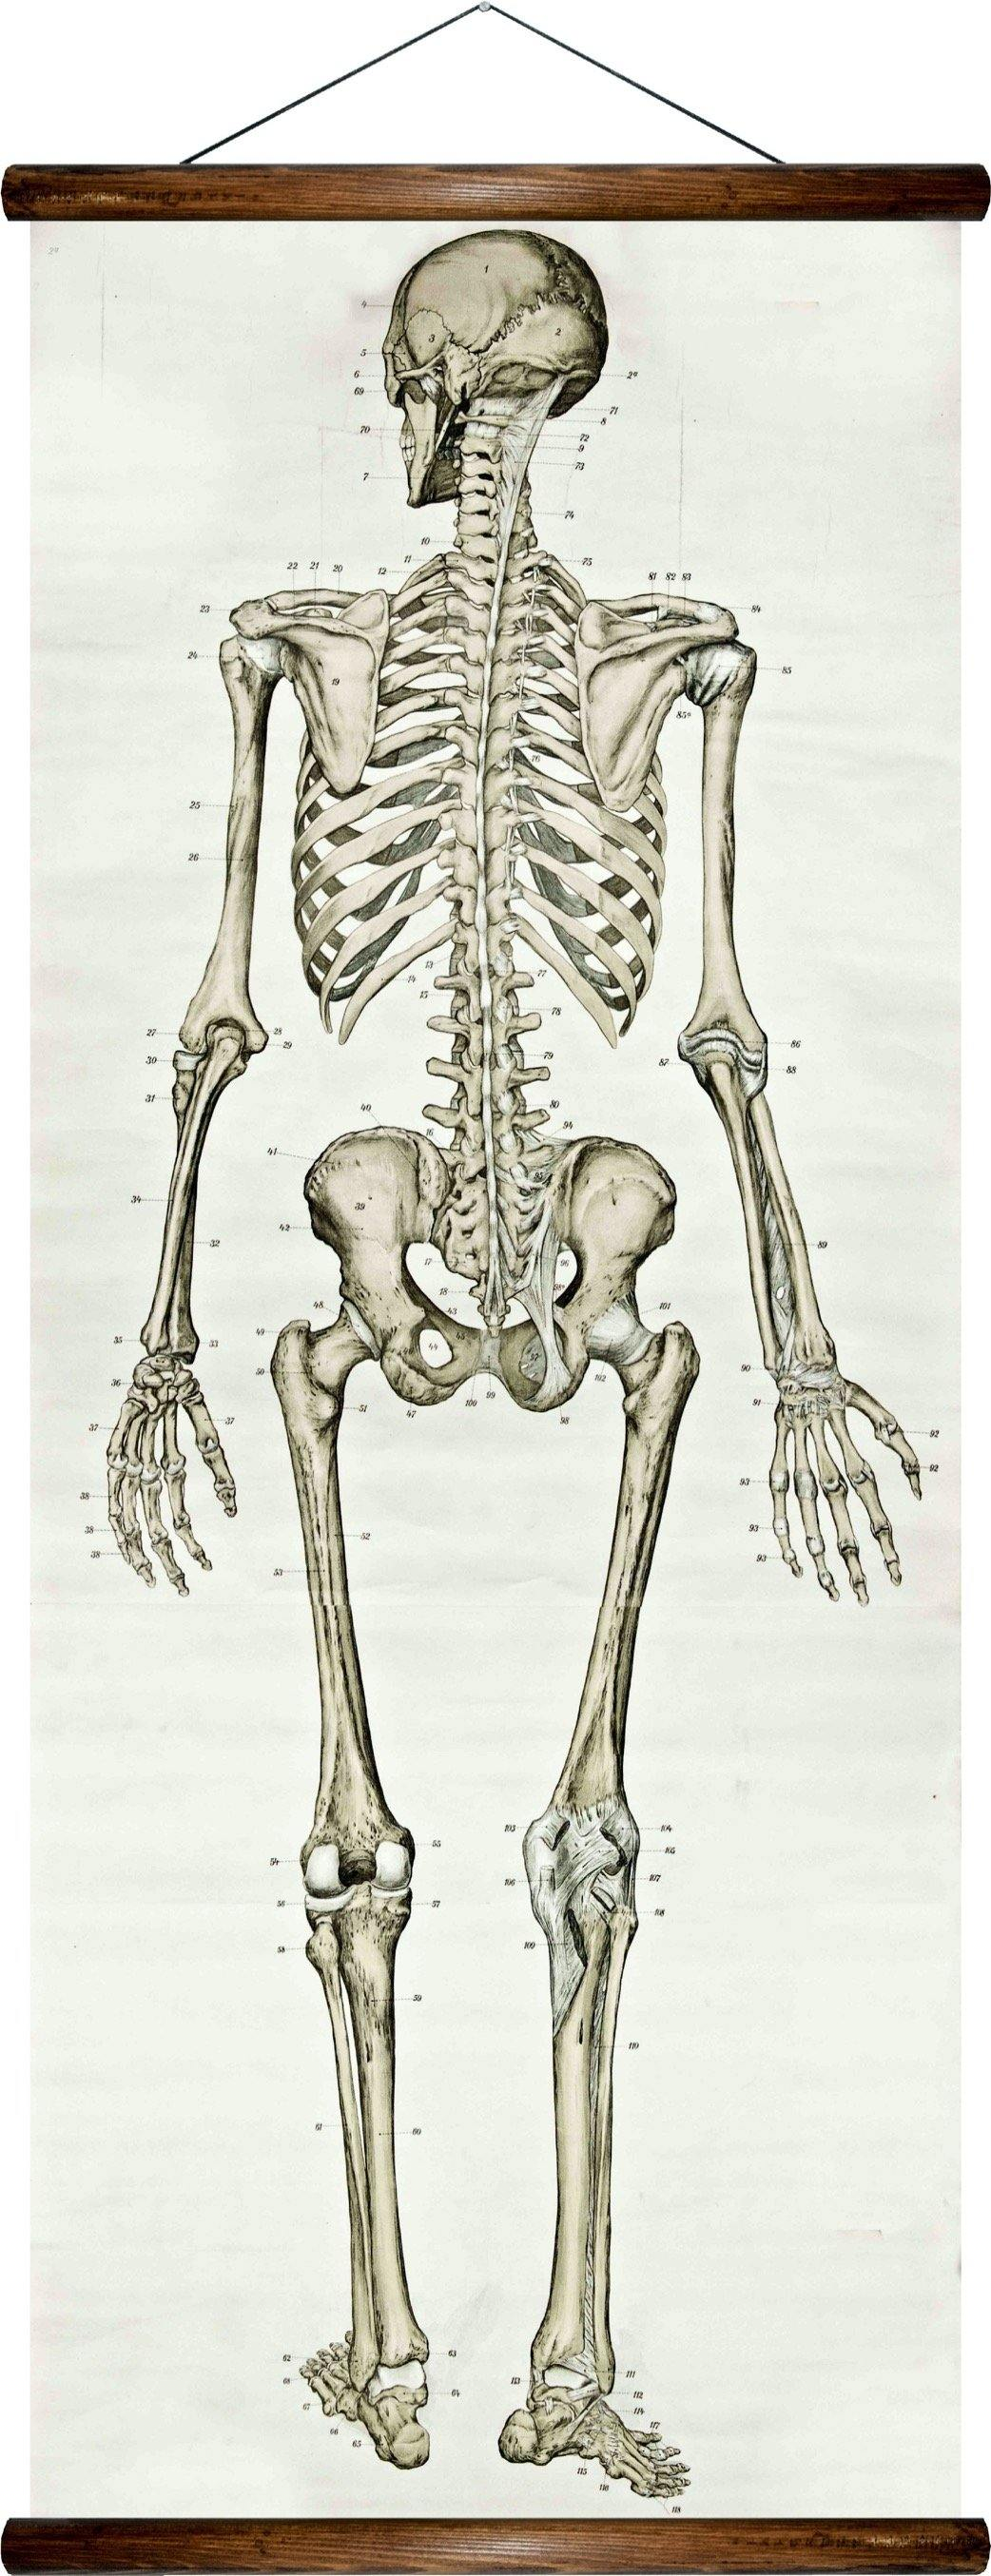 Human skeleton, reprint on linen